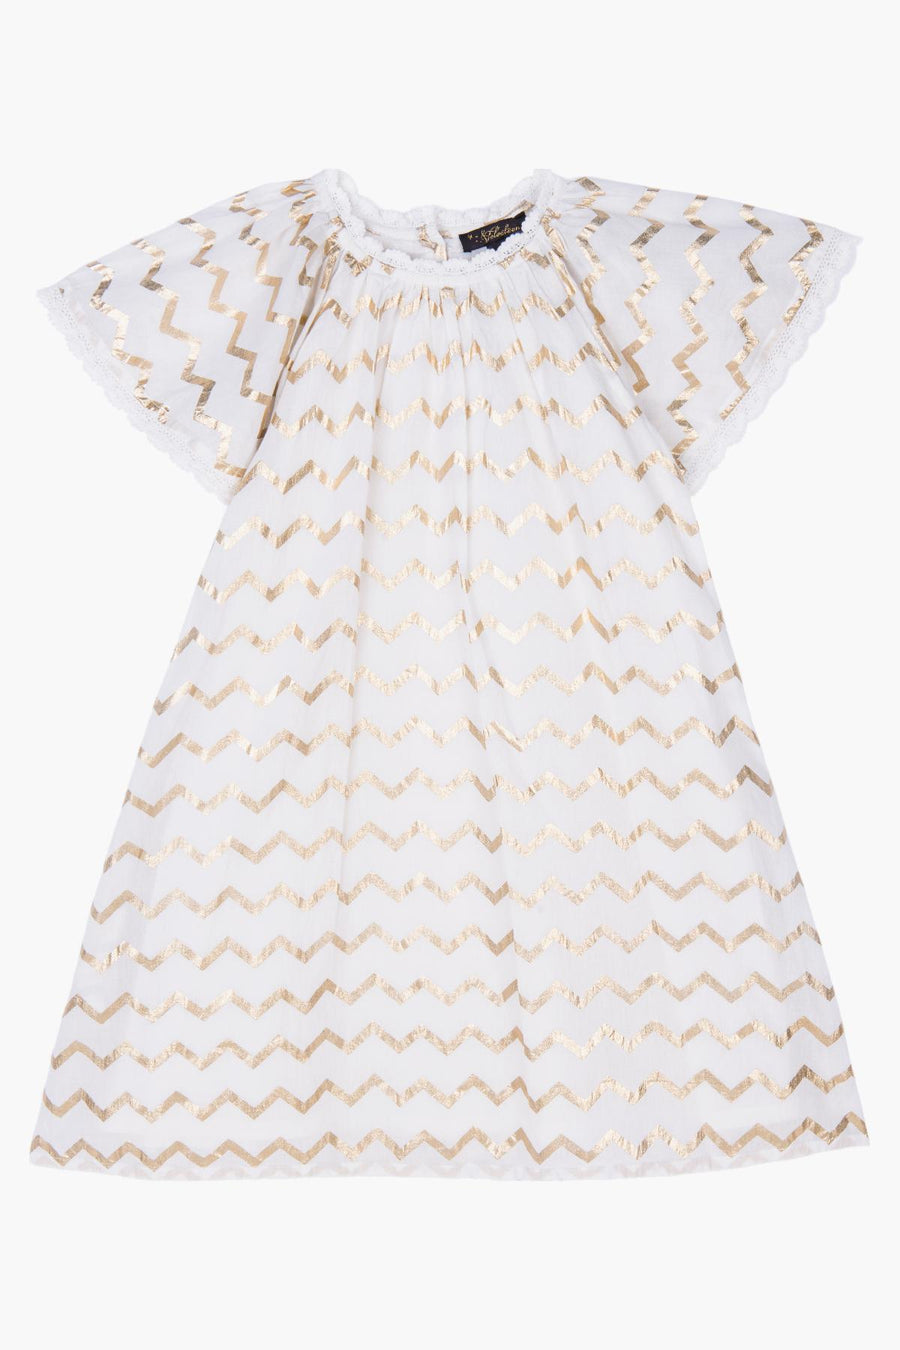 Velveteen Rosemary Chevron Girls Dress